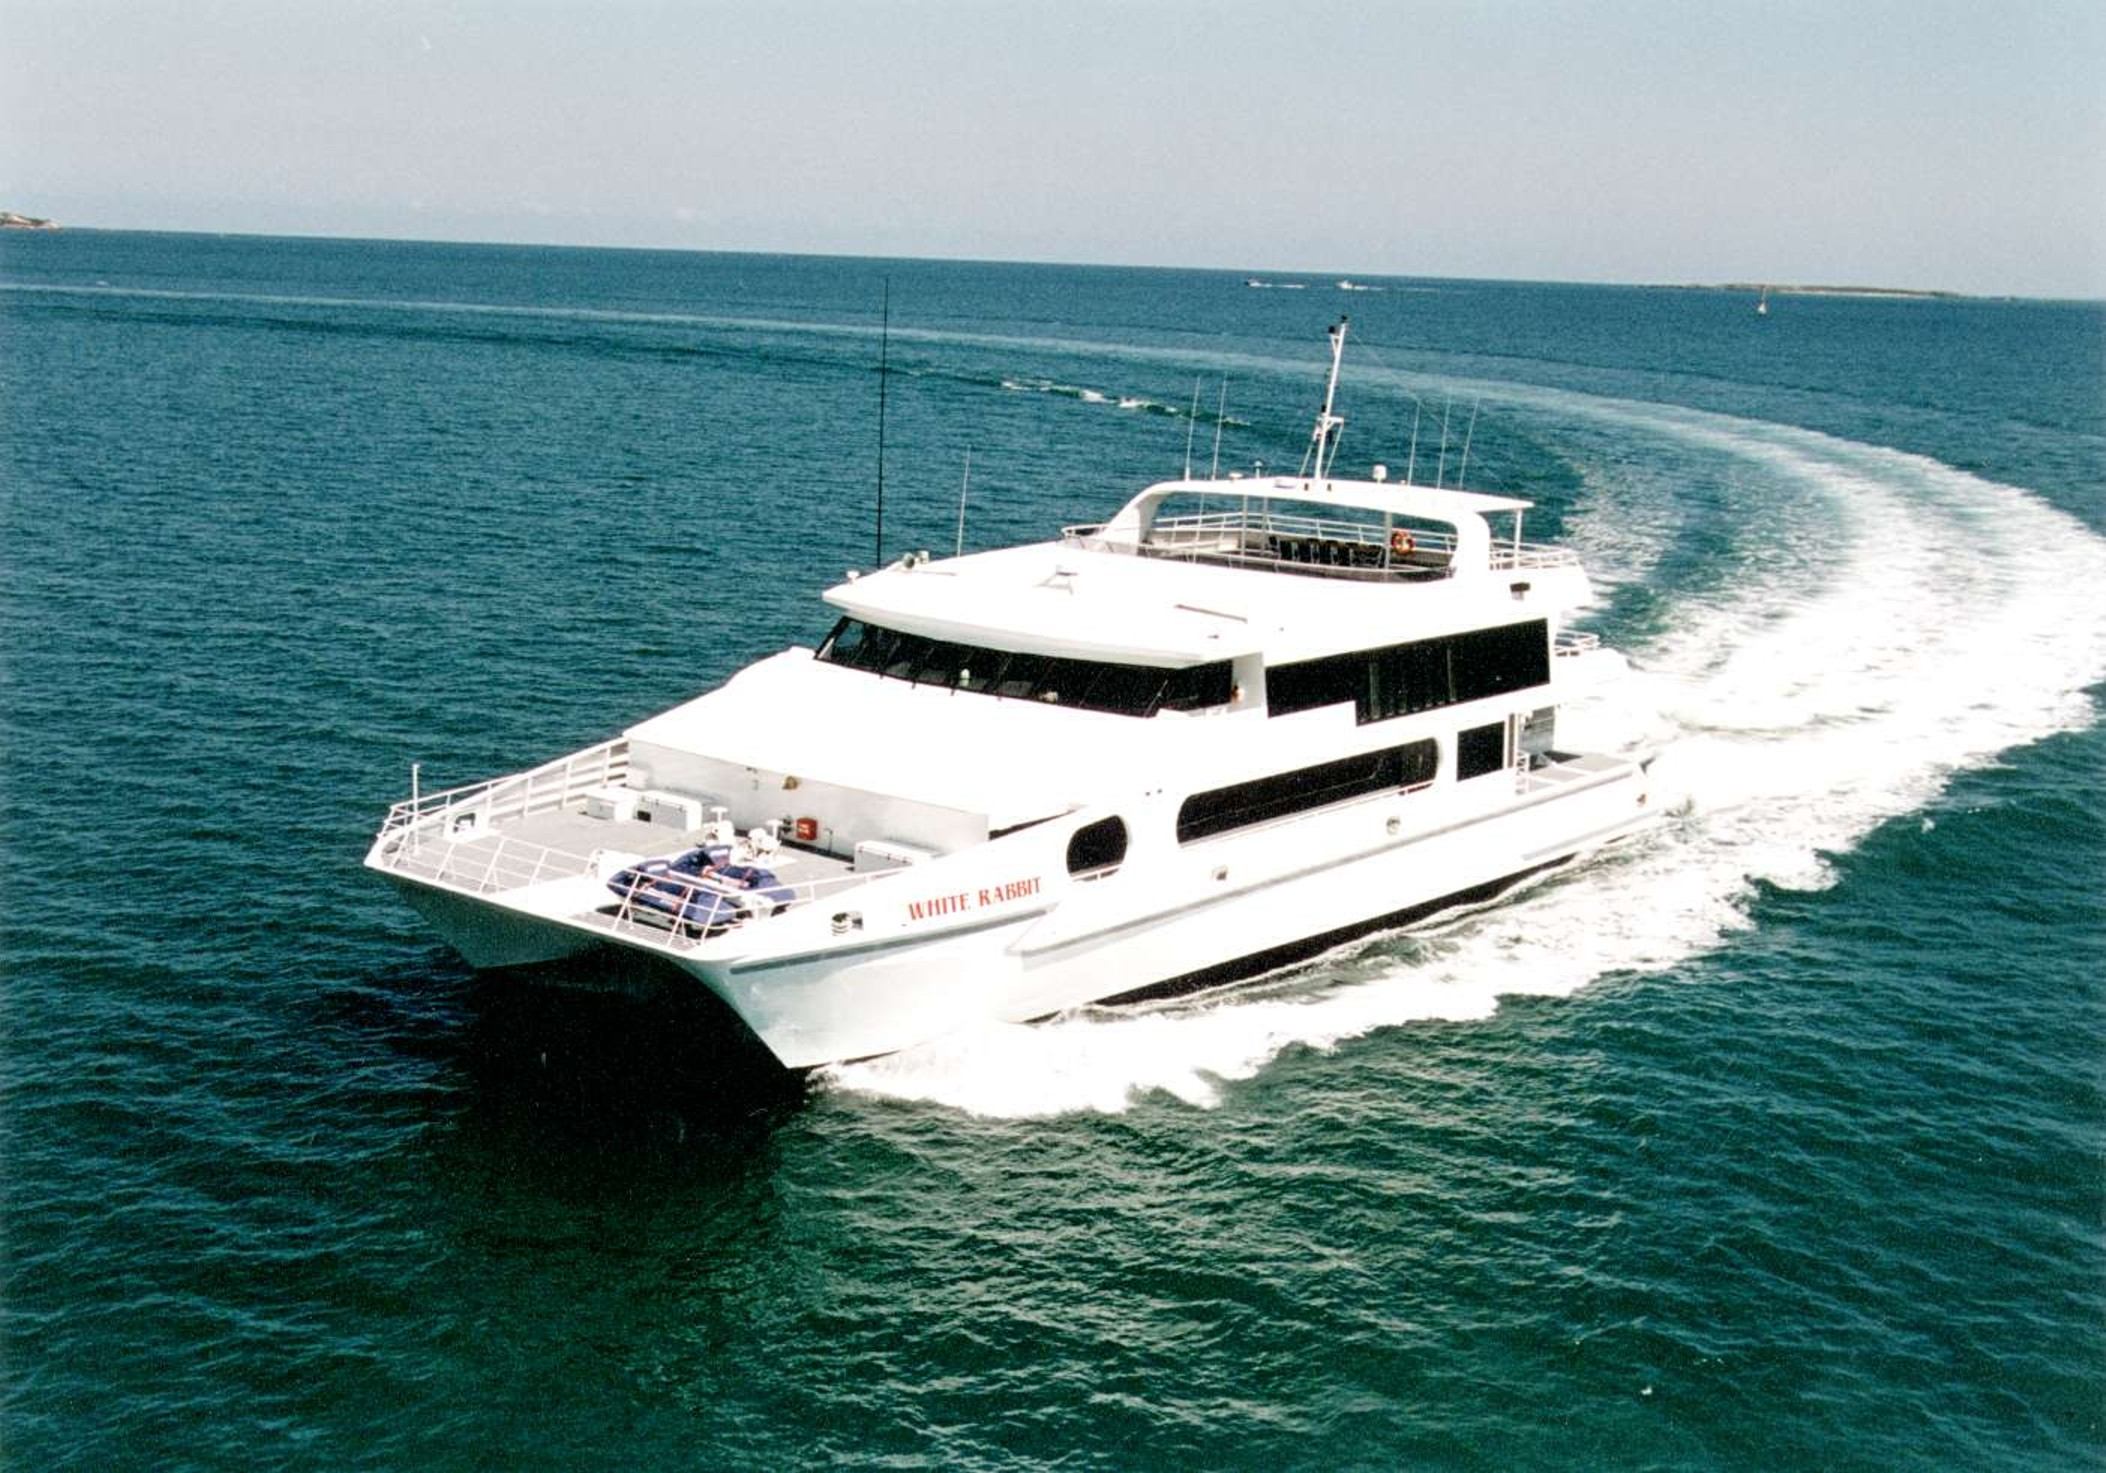 The 36m Luxury Motor Yacht White Rabbit Charlie Yacht